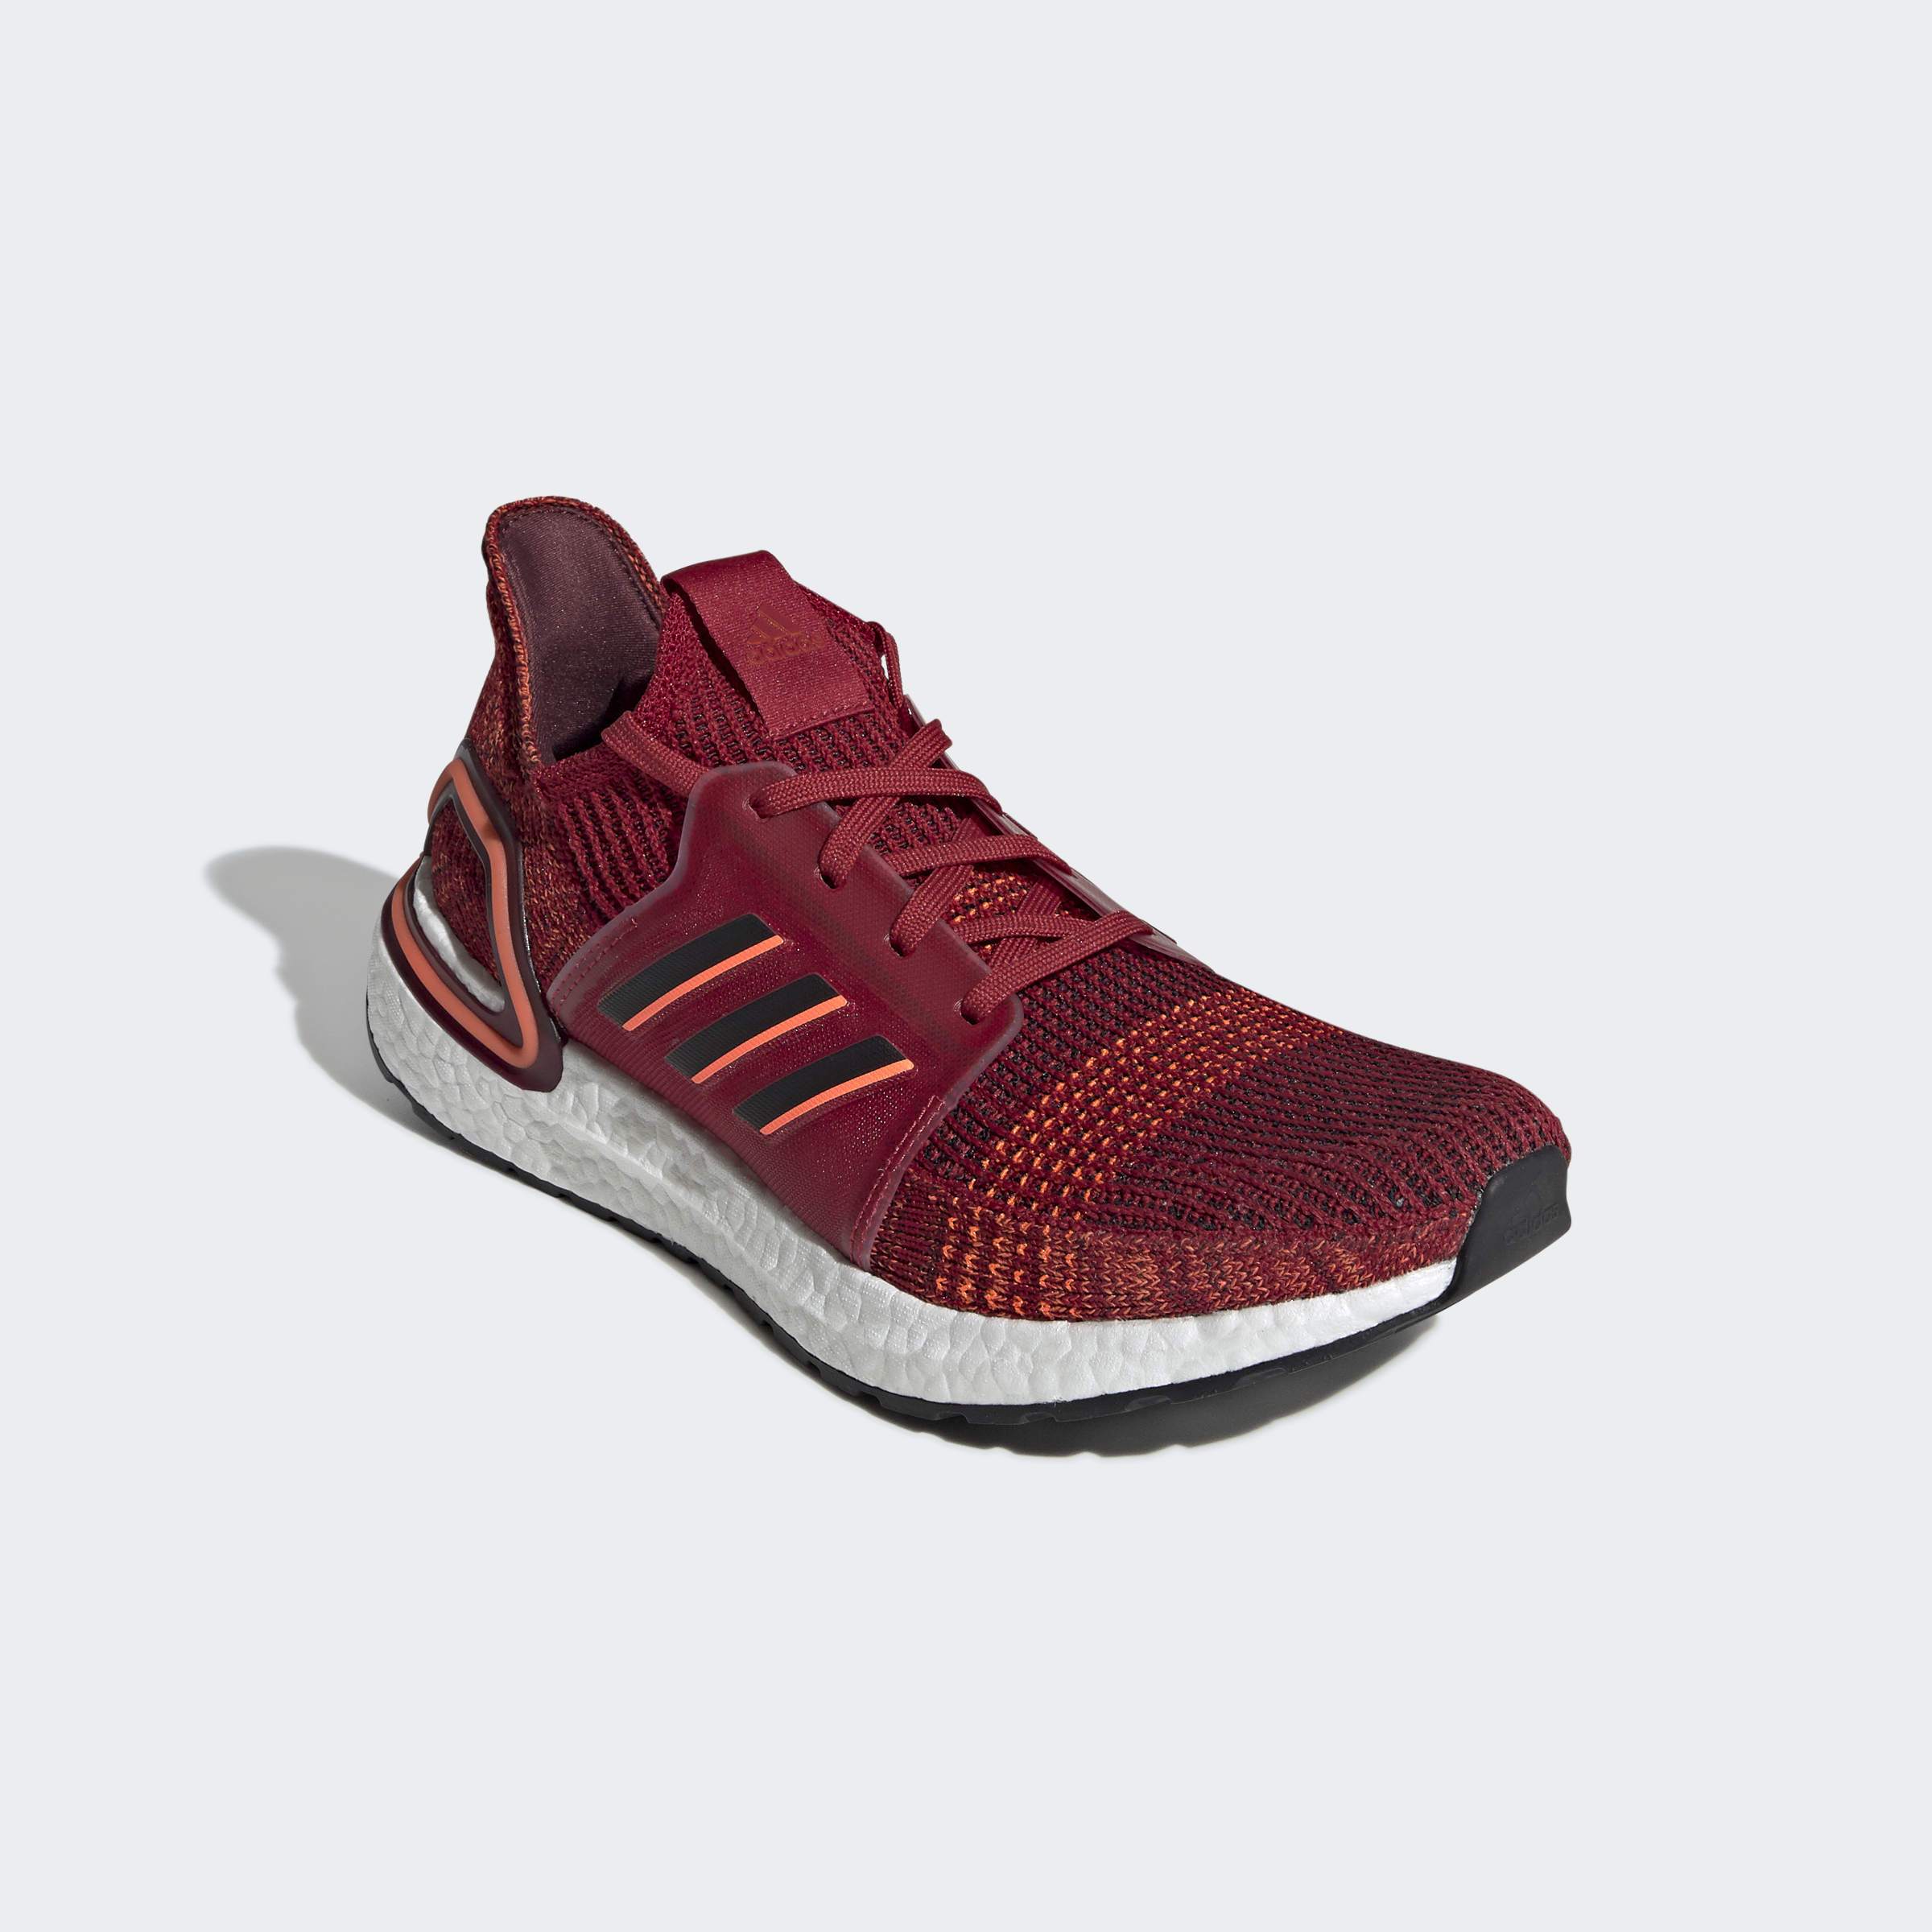 adidas-Ultraboost-19-Shoes-Athletic-amp-Sneakers thumbnail 93